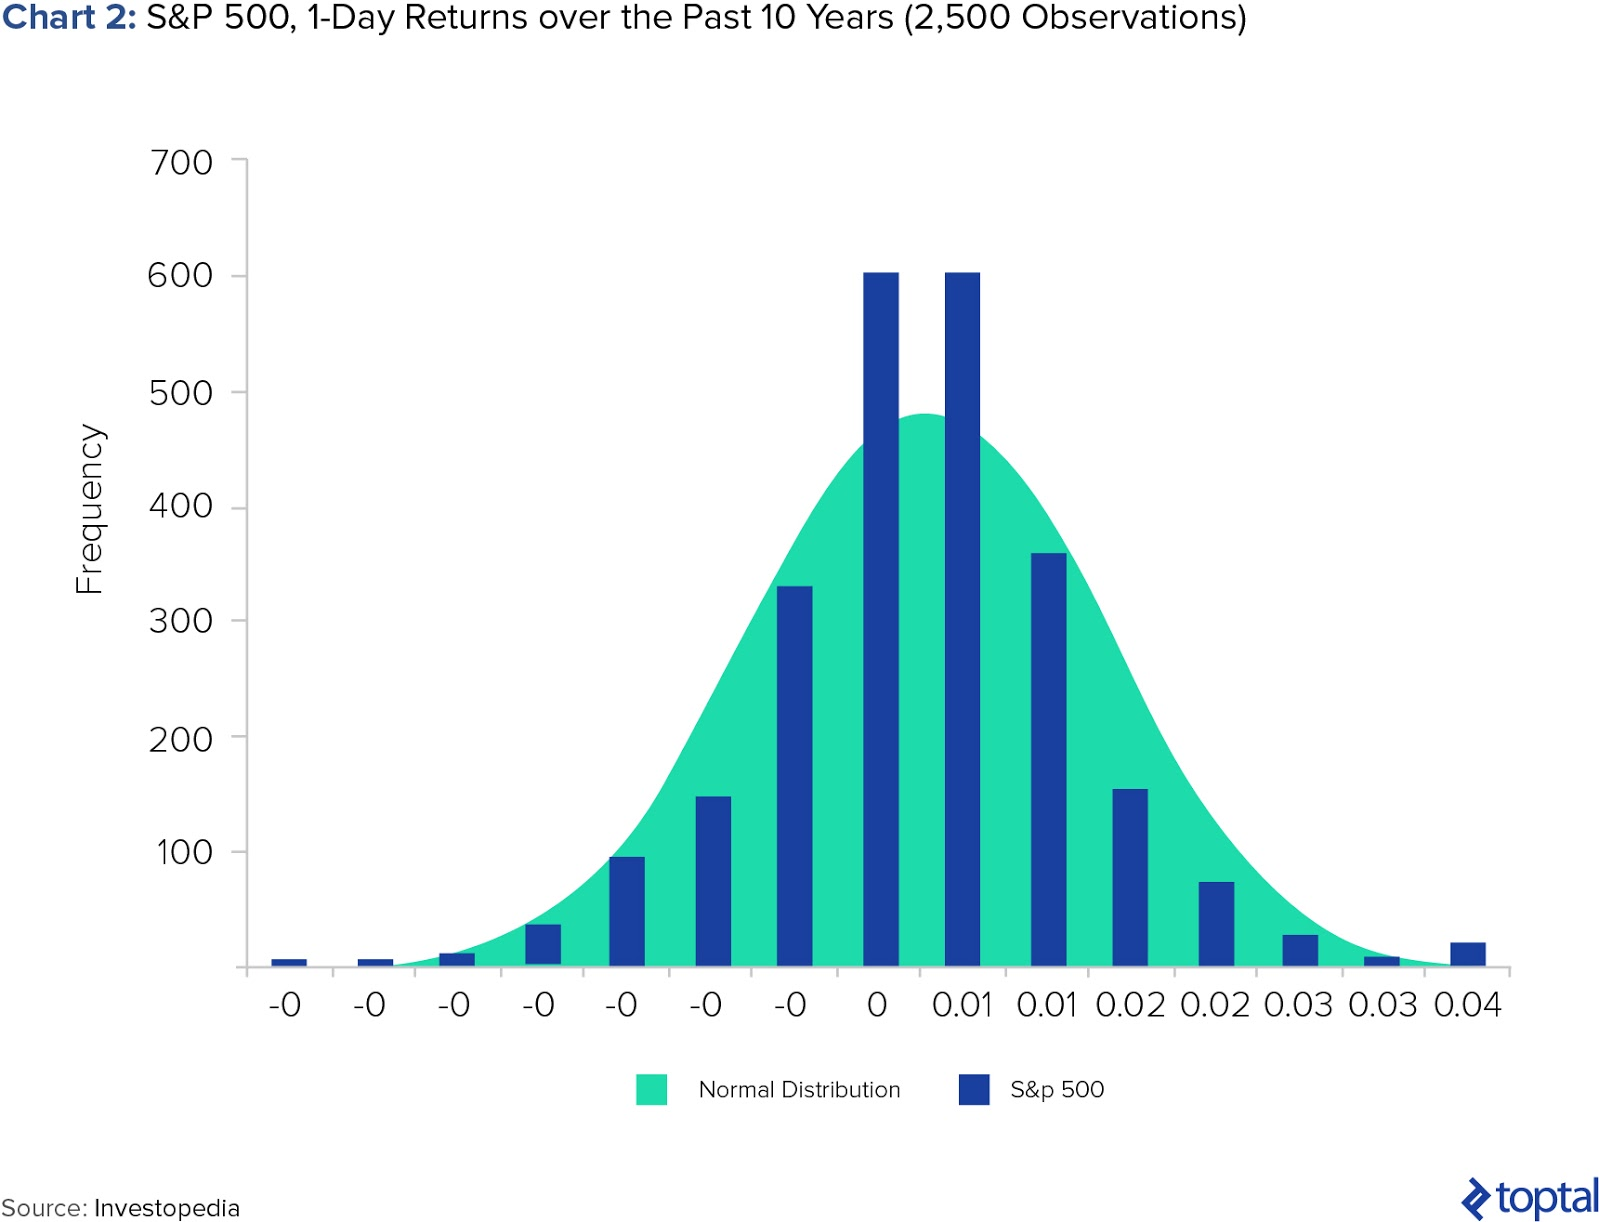 Chart 2: S&P 500, 1-Day Returns over the Past 10 Years (2,500 Observations)